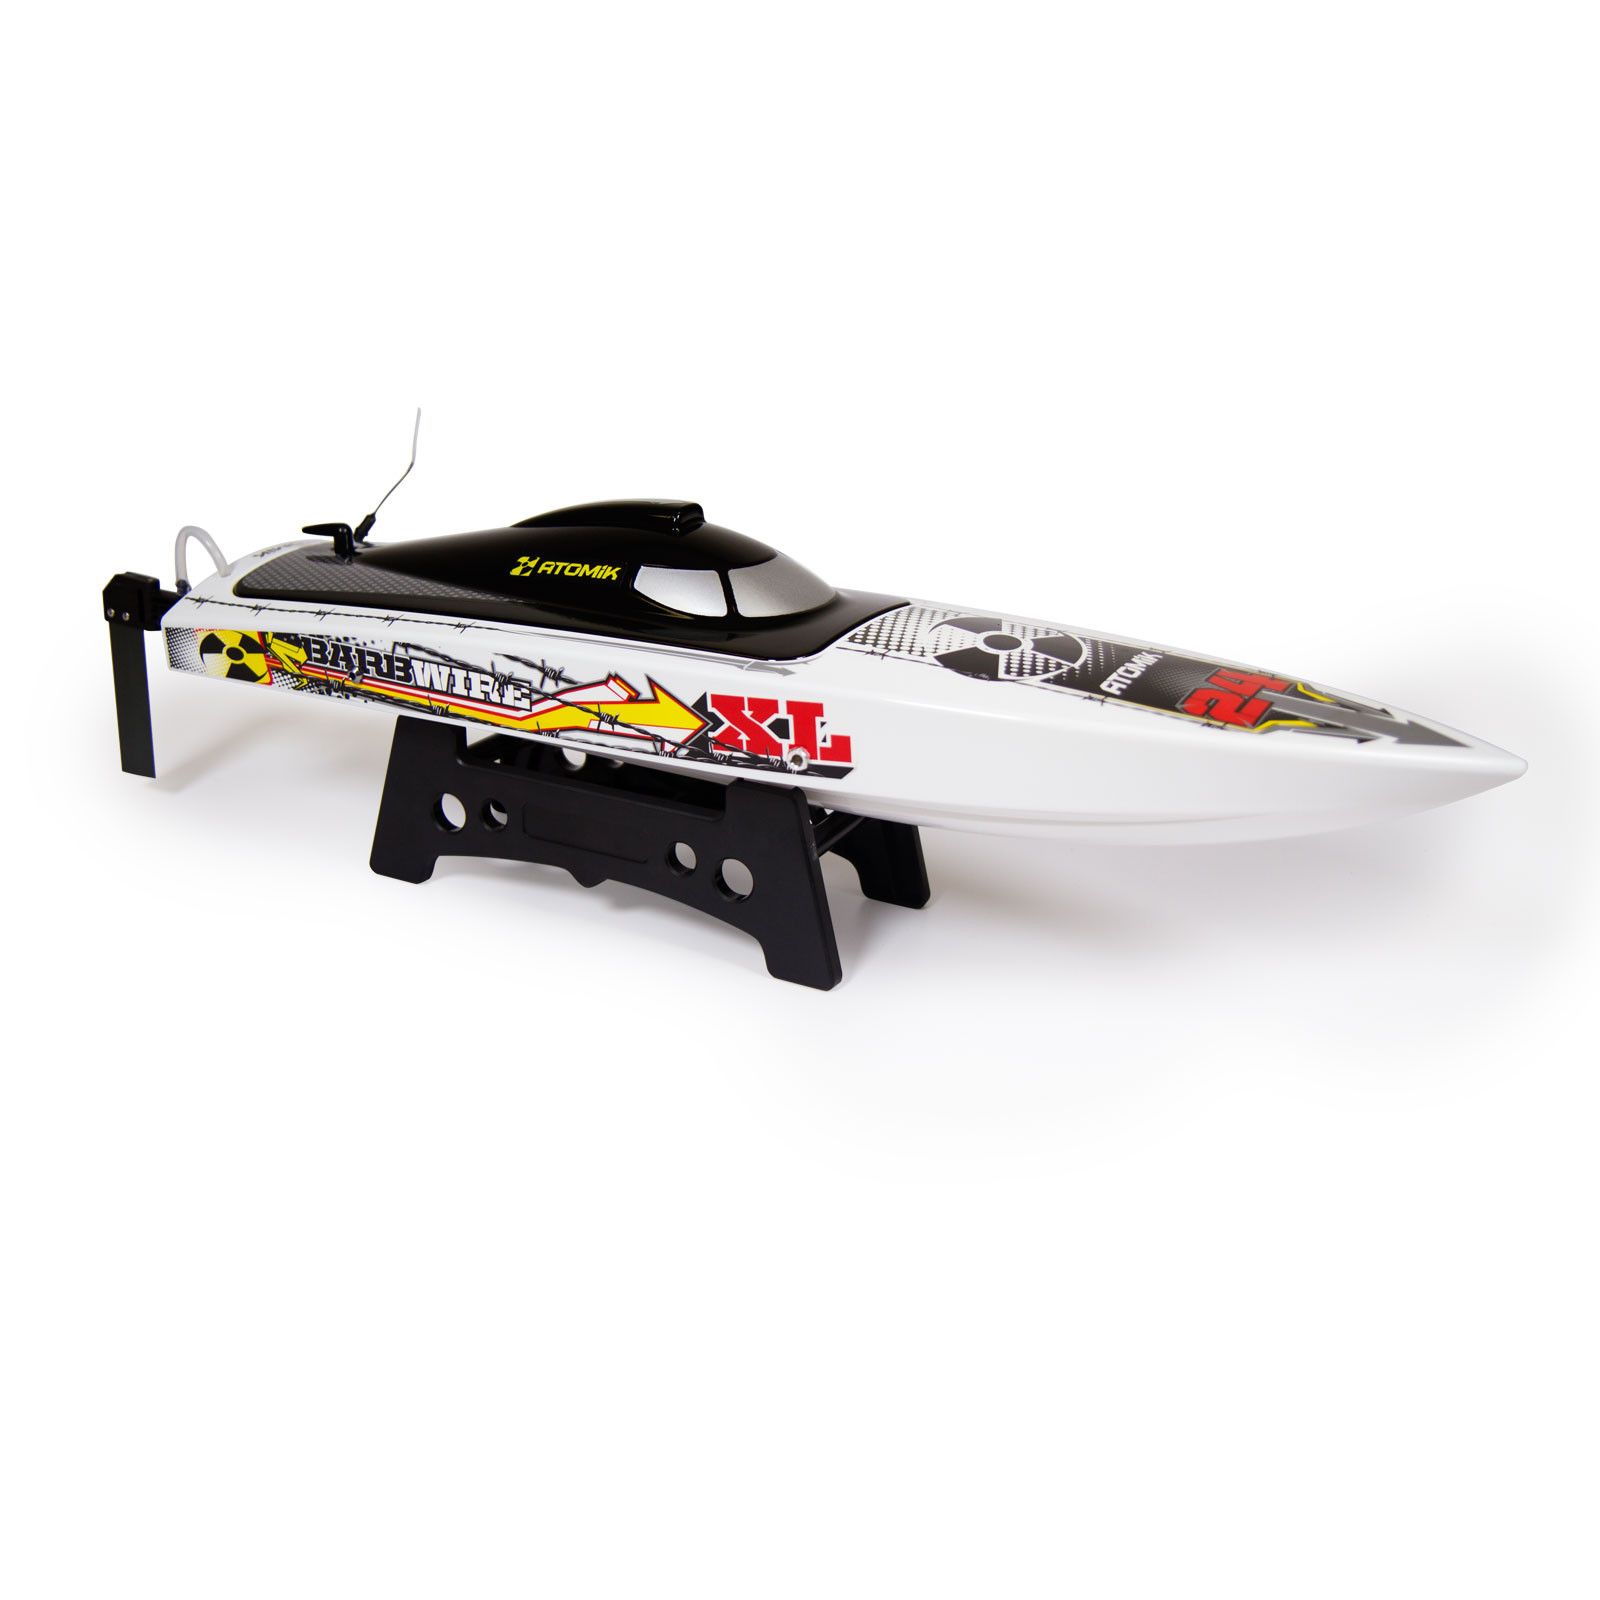 "Barbwire XL 24"" RTR Brushless RC Race Boat-Self Righting V Hull"